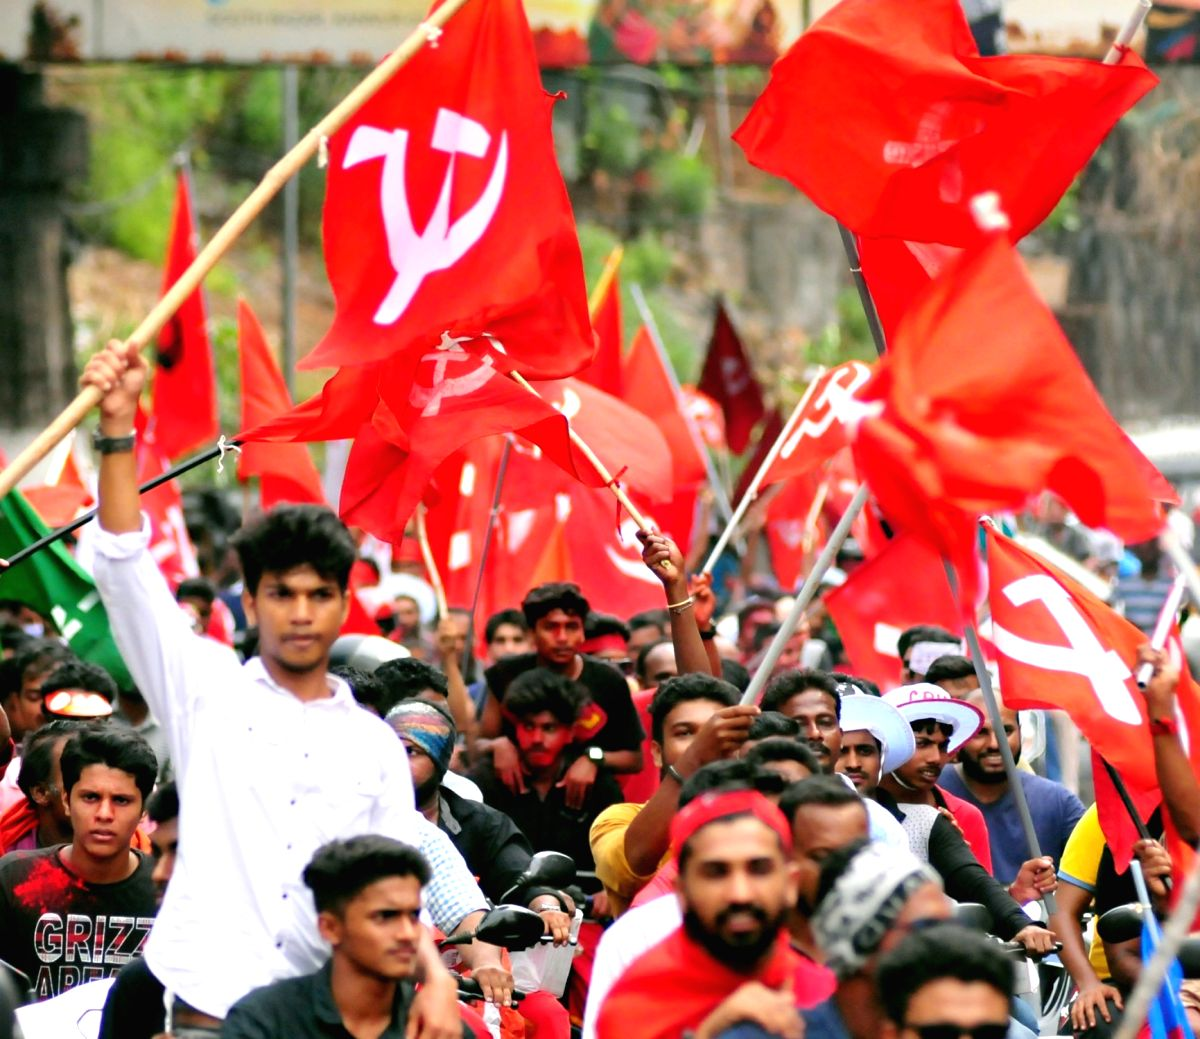 As statewide protests were called by the Students Federation of India (SFI) in Kerala on Monday to protest against the violence in Jawaharlal University, a Central and a state minister traded charges while blaming each other for the violence.